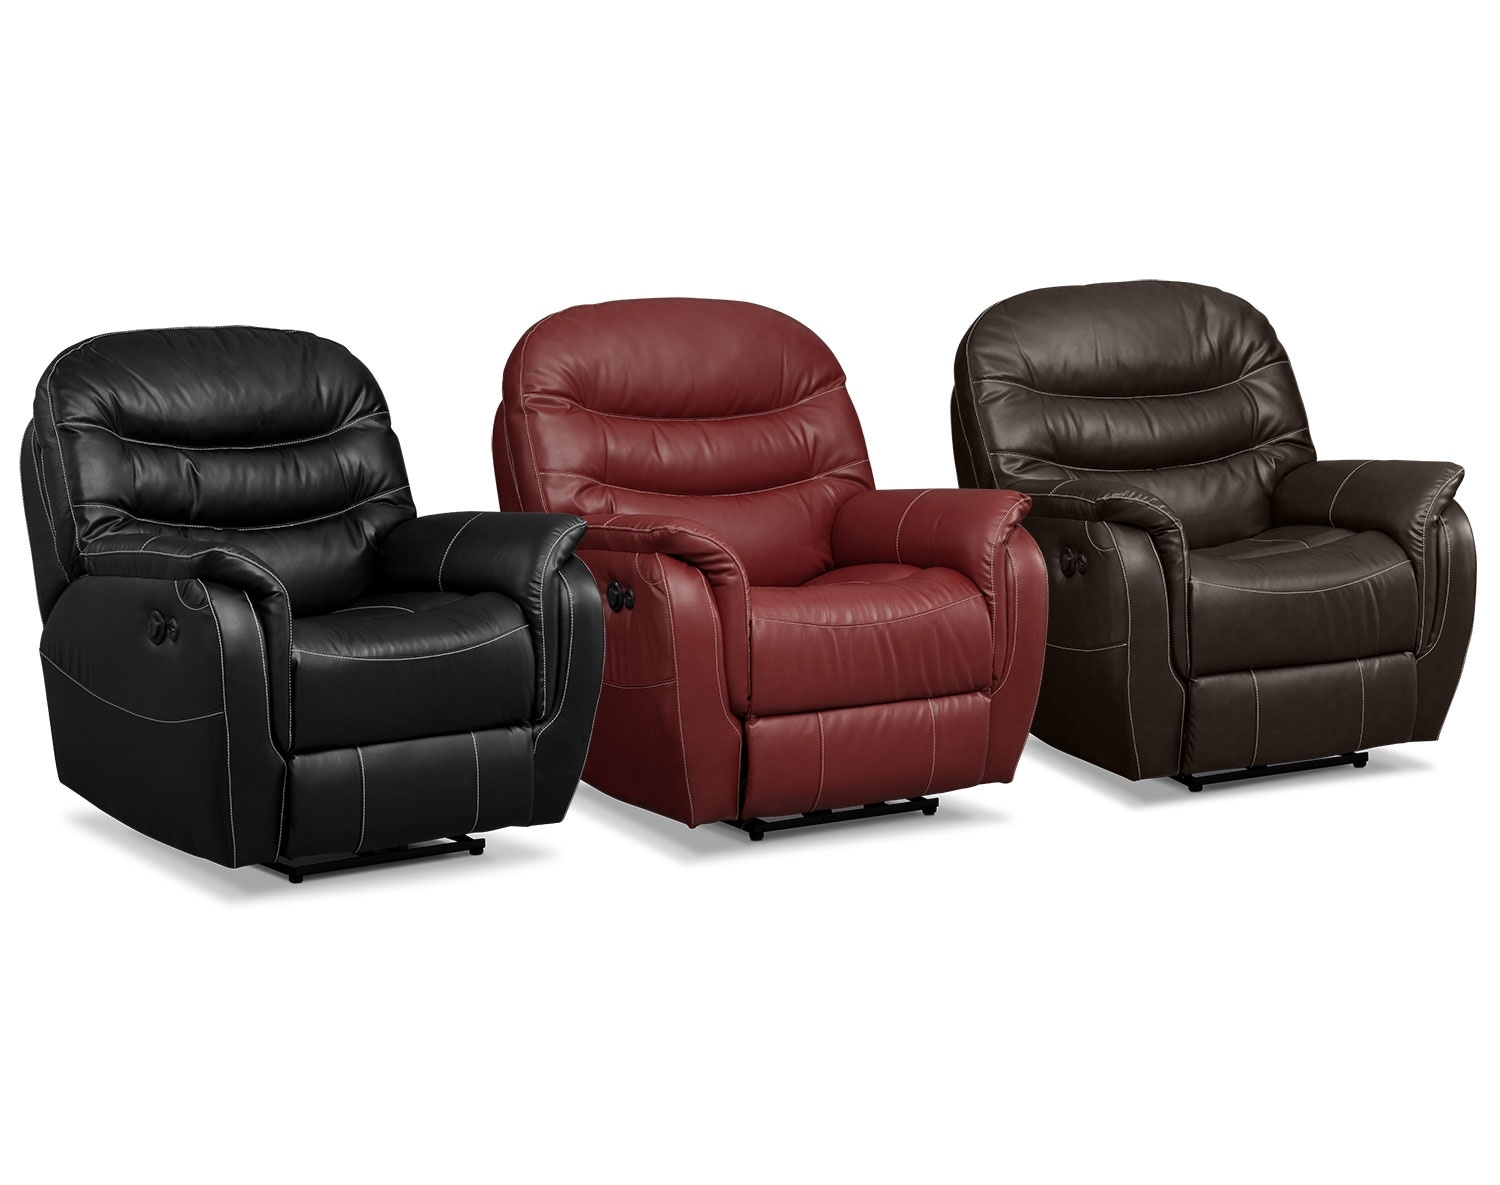 Living Room Furniture - The Bradford Collection - Power Recliner